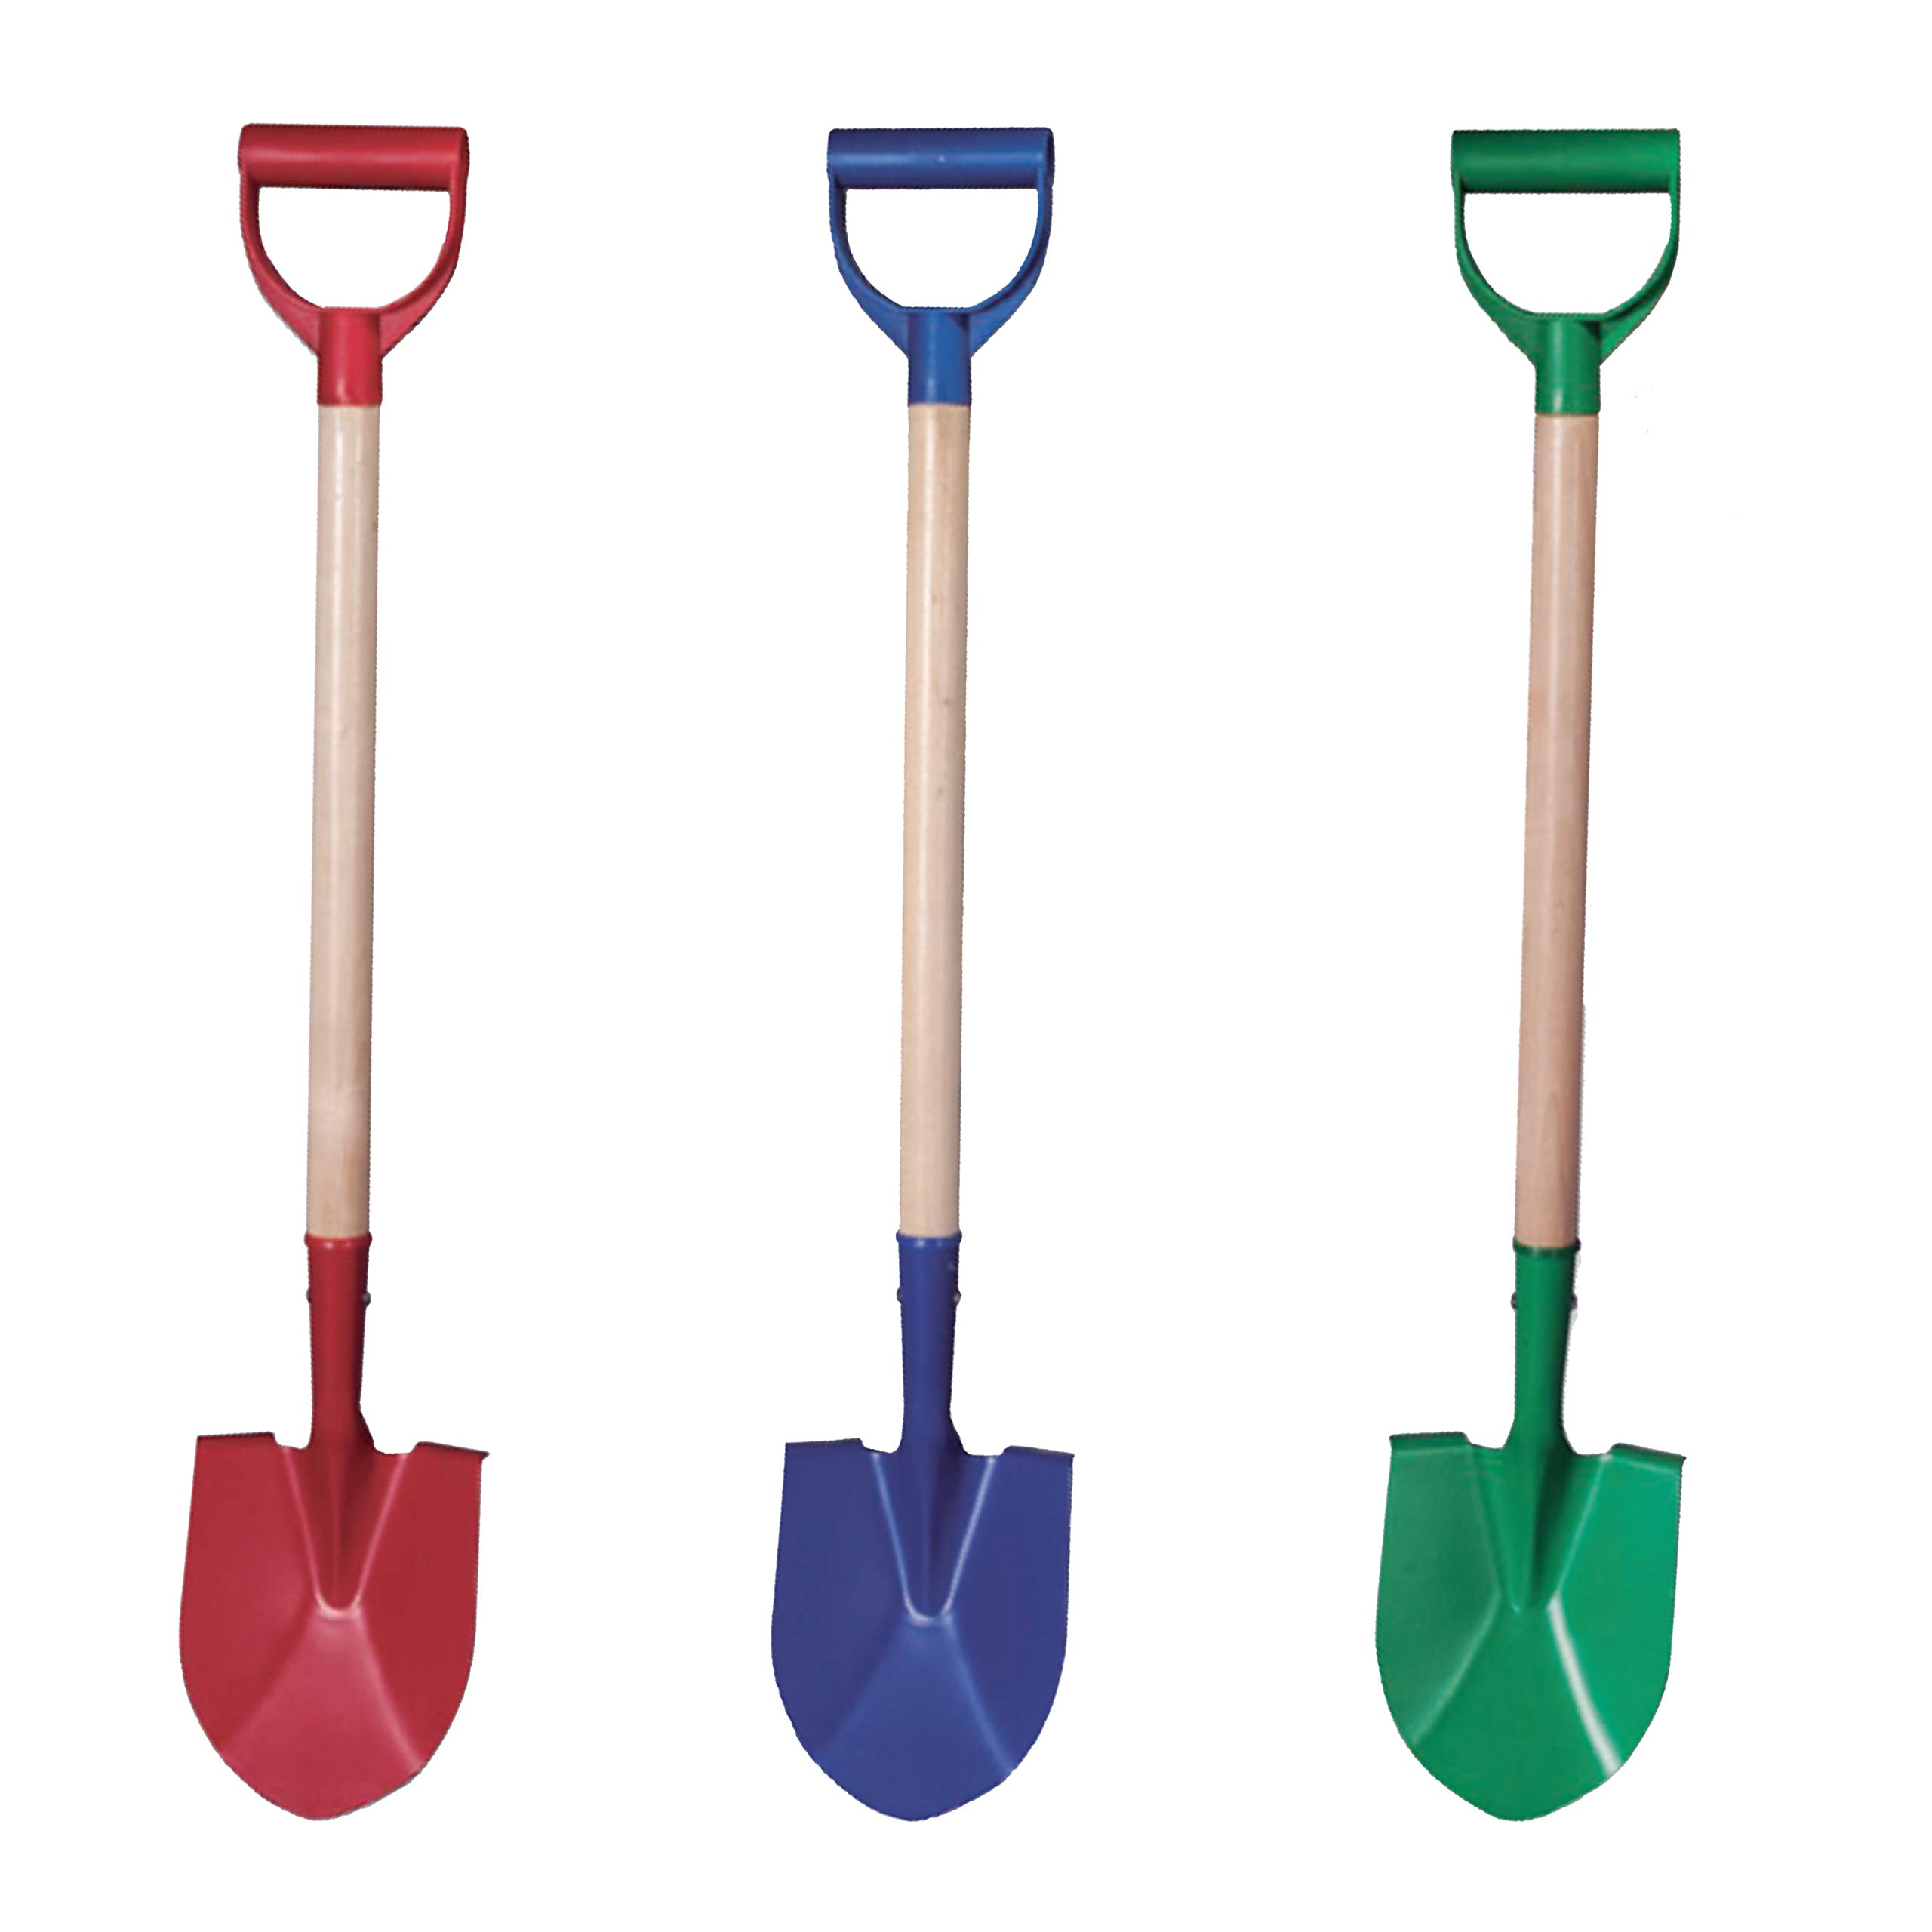 Beachgoer Pack of 3 32-Inch Metal Large Heavy Duty Beach Kids Wood Sand Shovels with Plastic Handle - 3 Color Pack Red Blue Green Sand Toys by Beachgoer